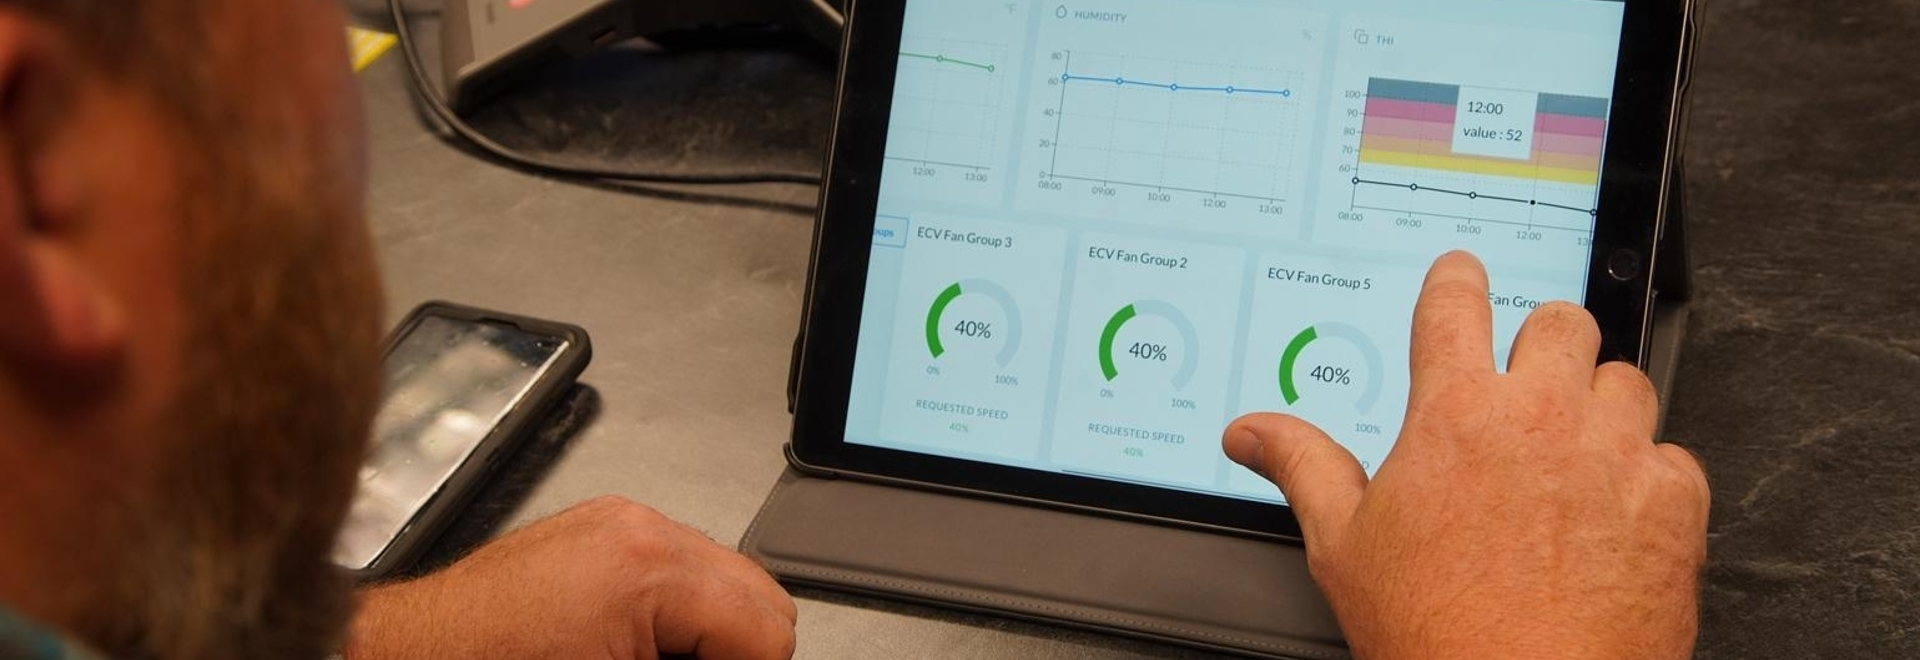 REMOTE CONTROL: The VES DairyBOS system is controlled using an online interface that can be accessed via tablet or smartphone